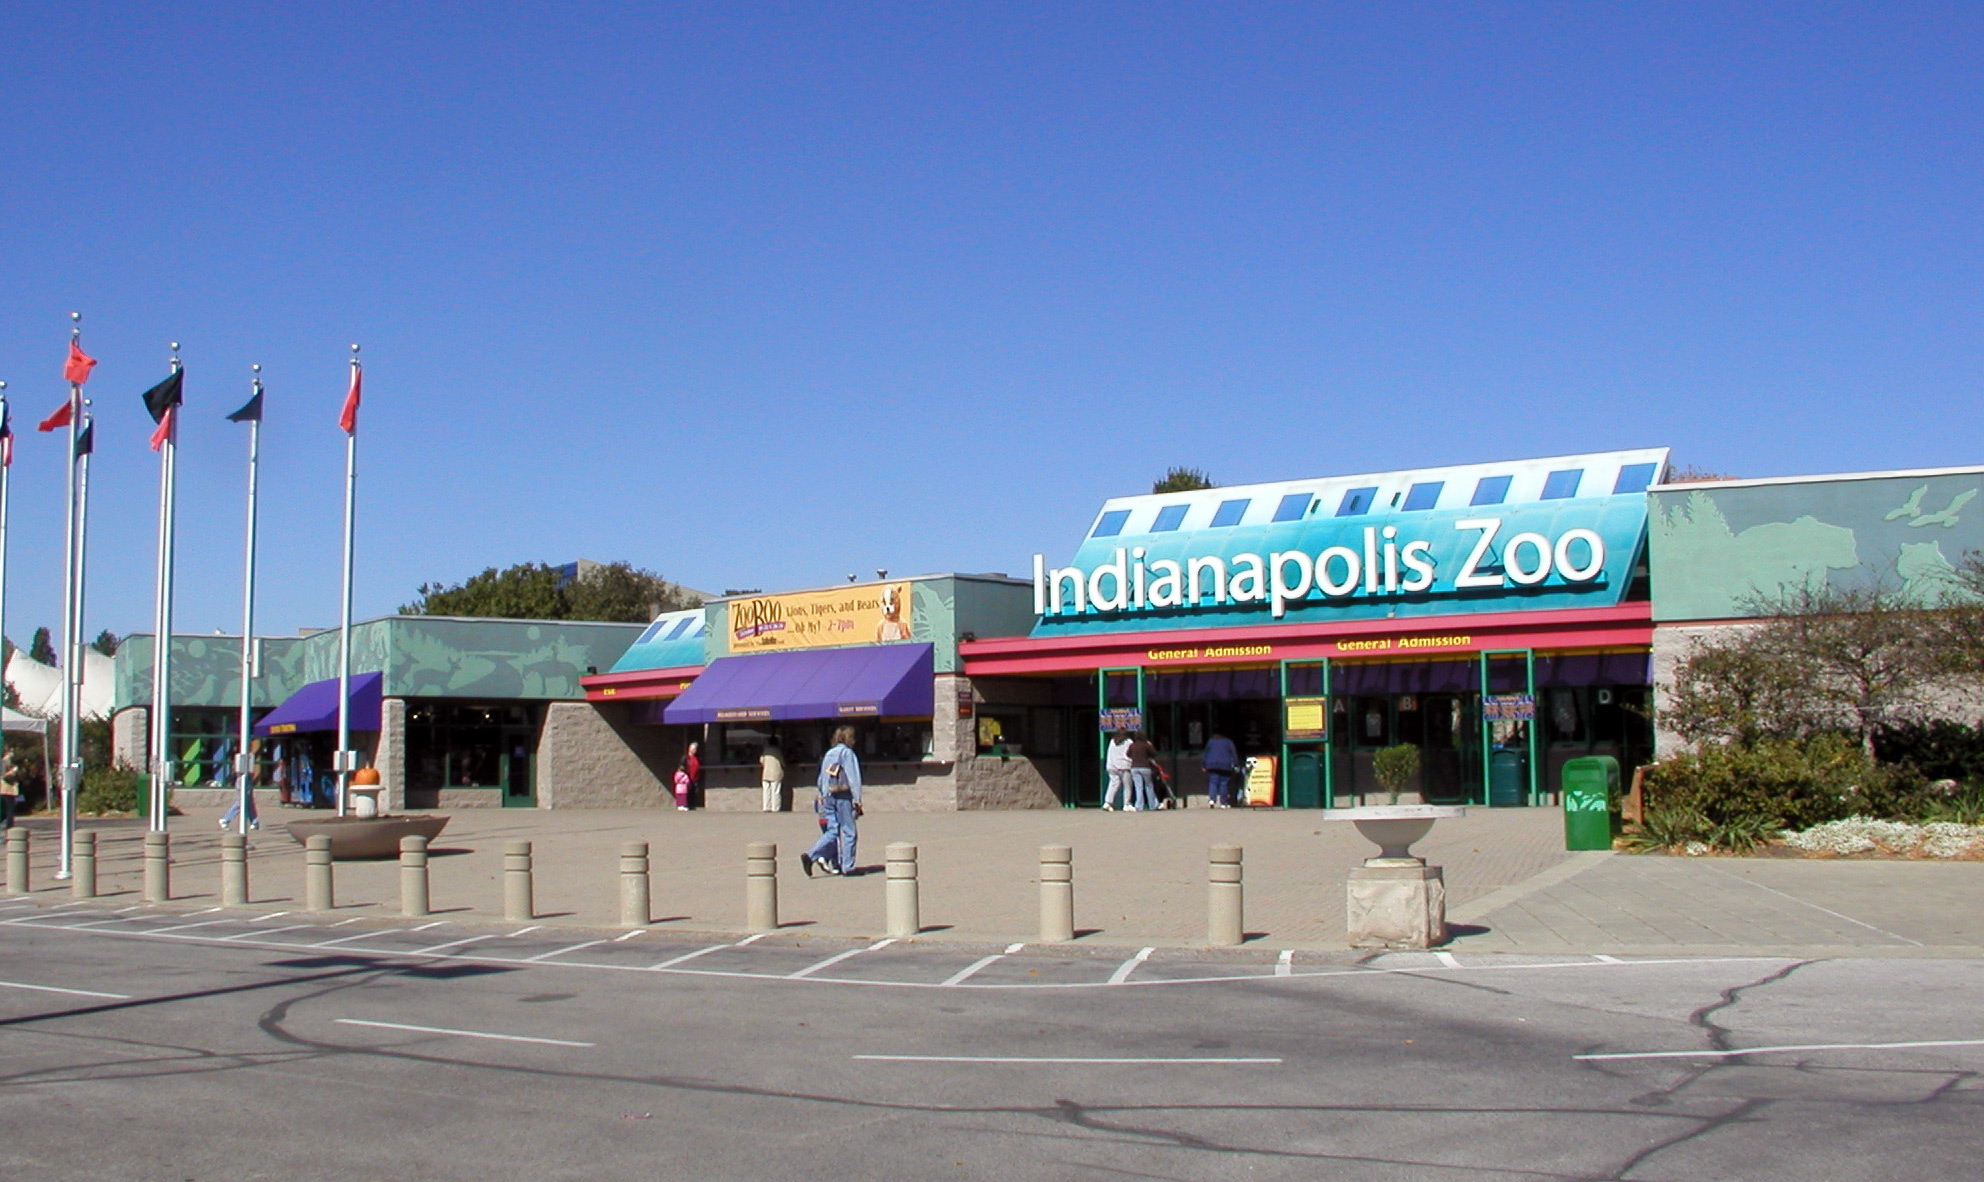 indianapolis zoo map with Indianapolis Zoo on Polar Bear as well Perth Zoo Map together with Texas Am Map likewise Zoo Facts Ne moreover 11605157165.